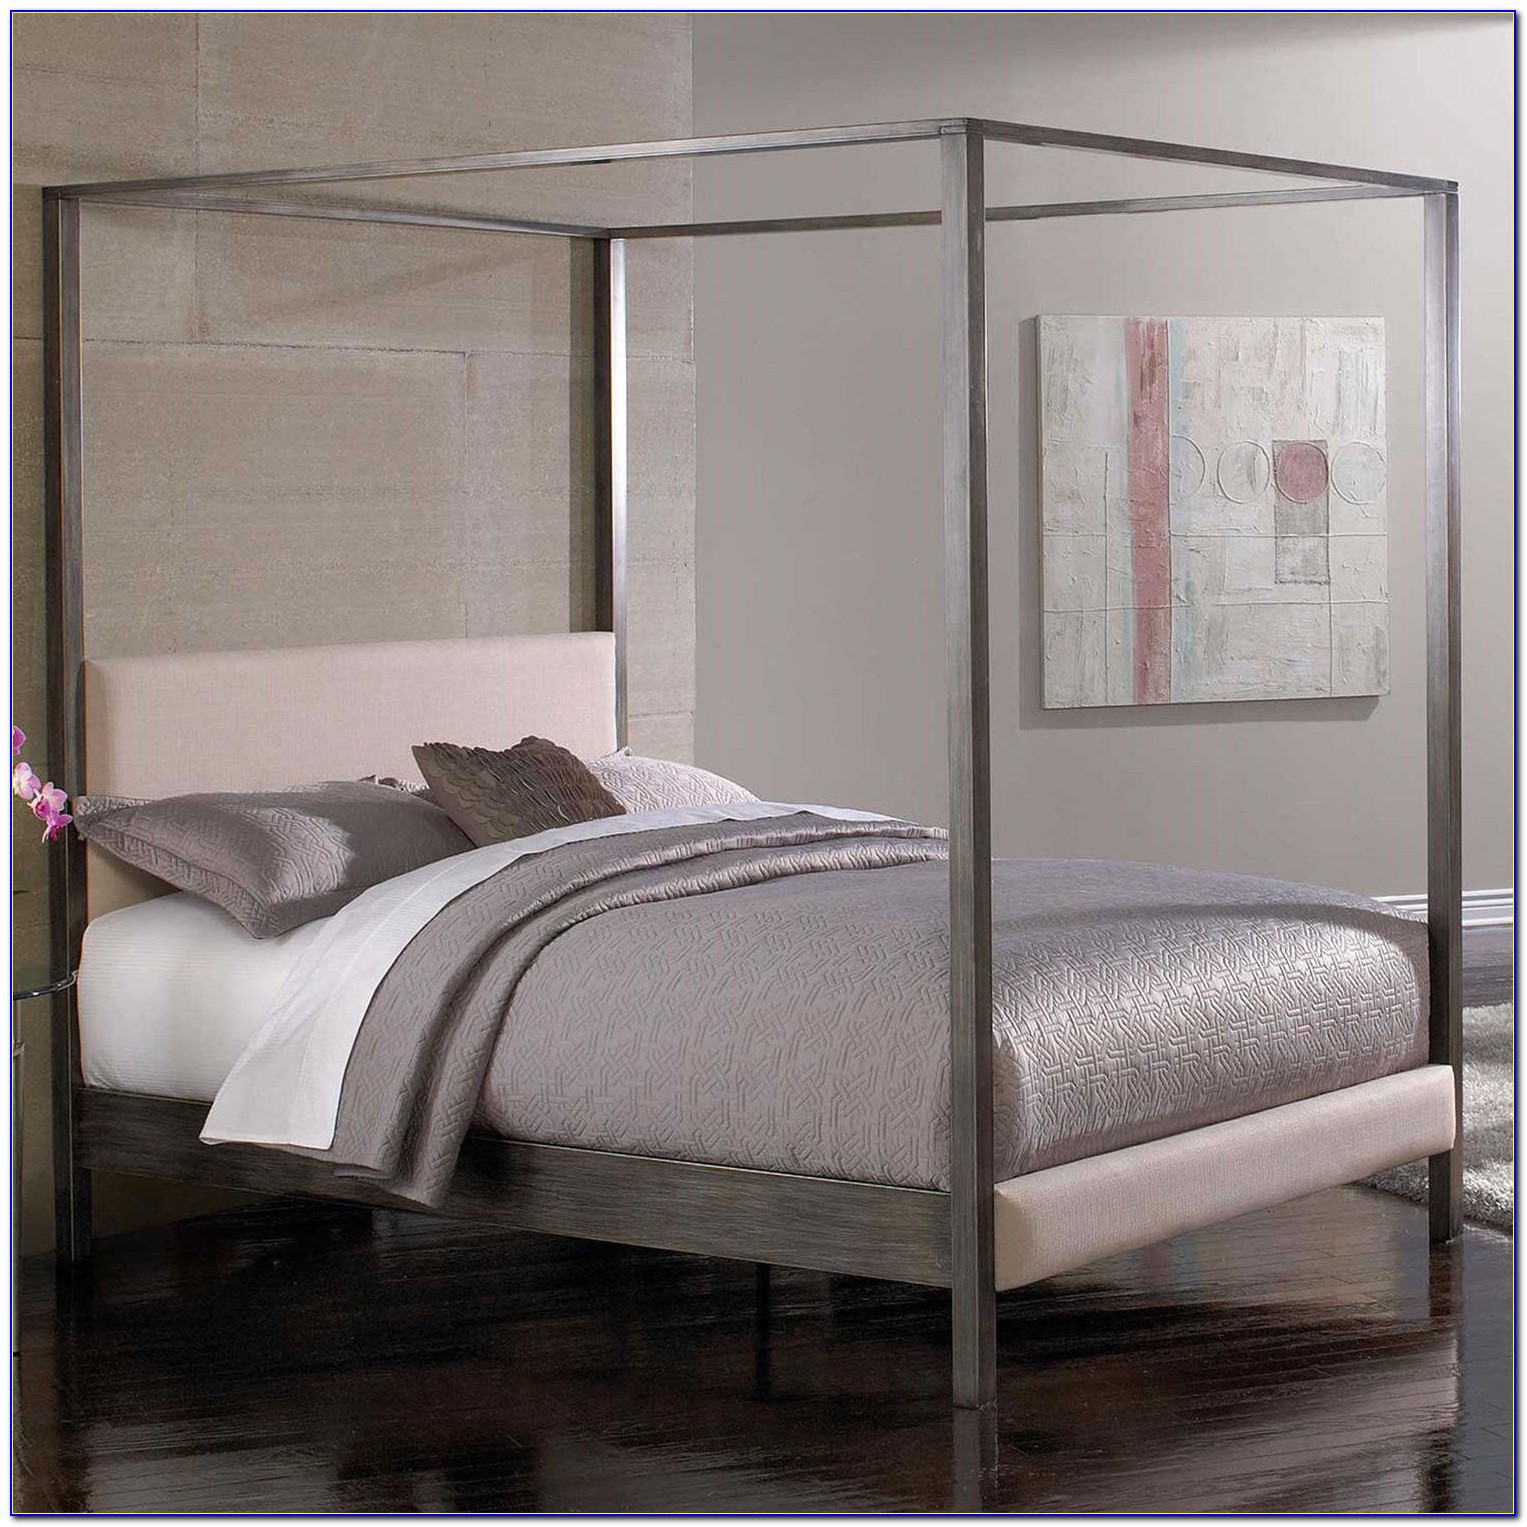 King Size Platform Bed Frame And Headboard